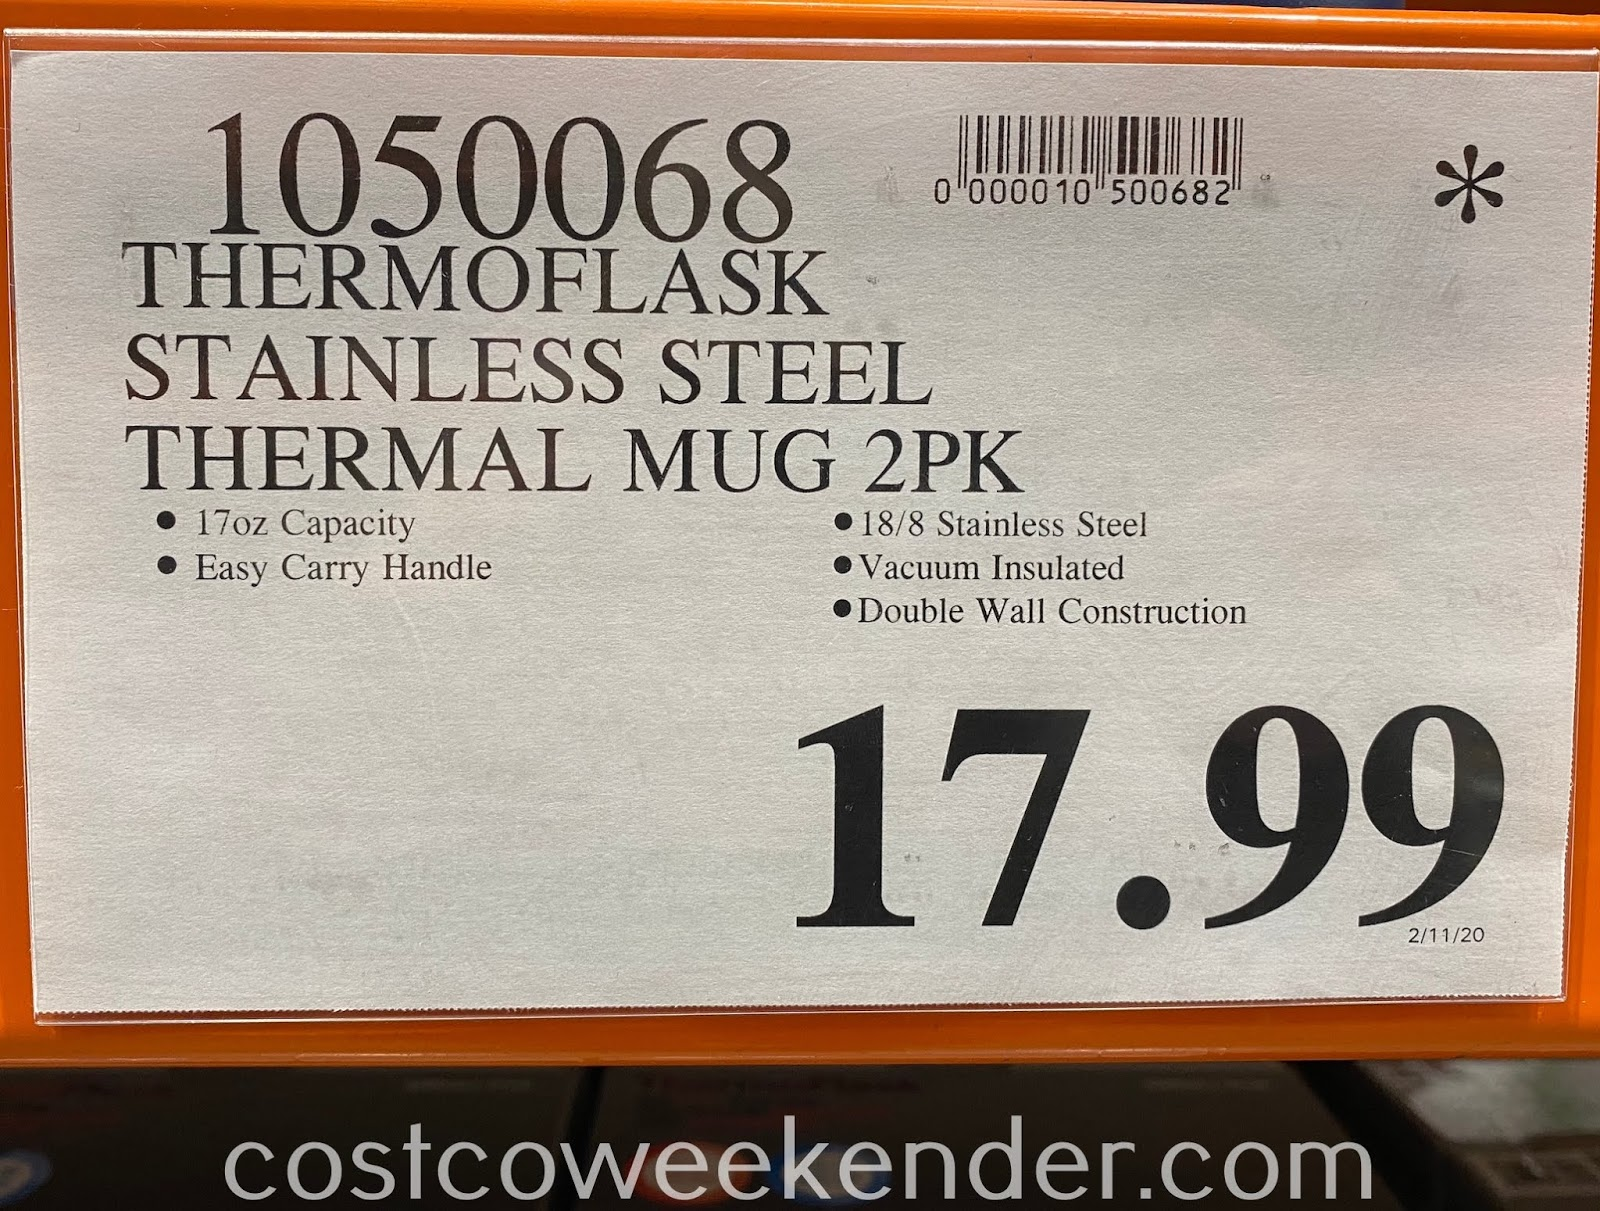 Deal for a set of 2 ThermoFlask Stainless Steel Travel Mugs at Costco